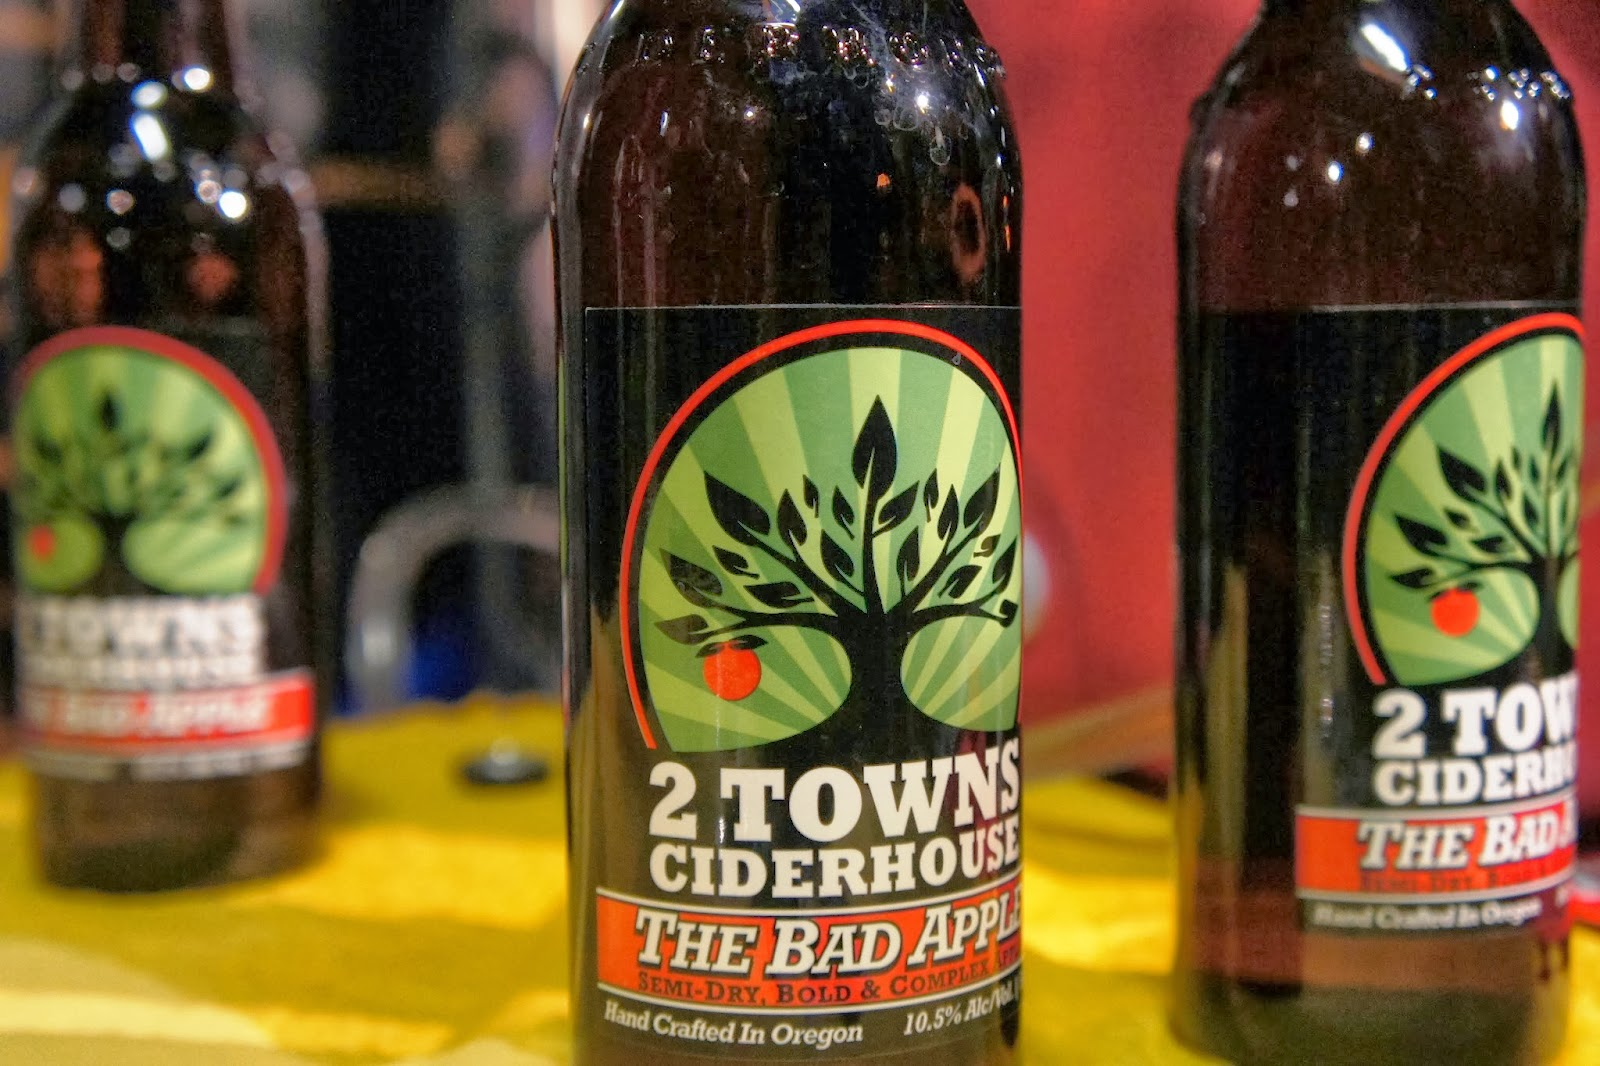 2 Towns Ciderhouse San Diego Winter Brew Fest